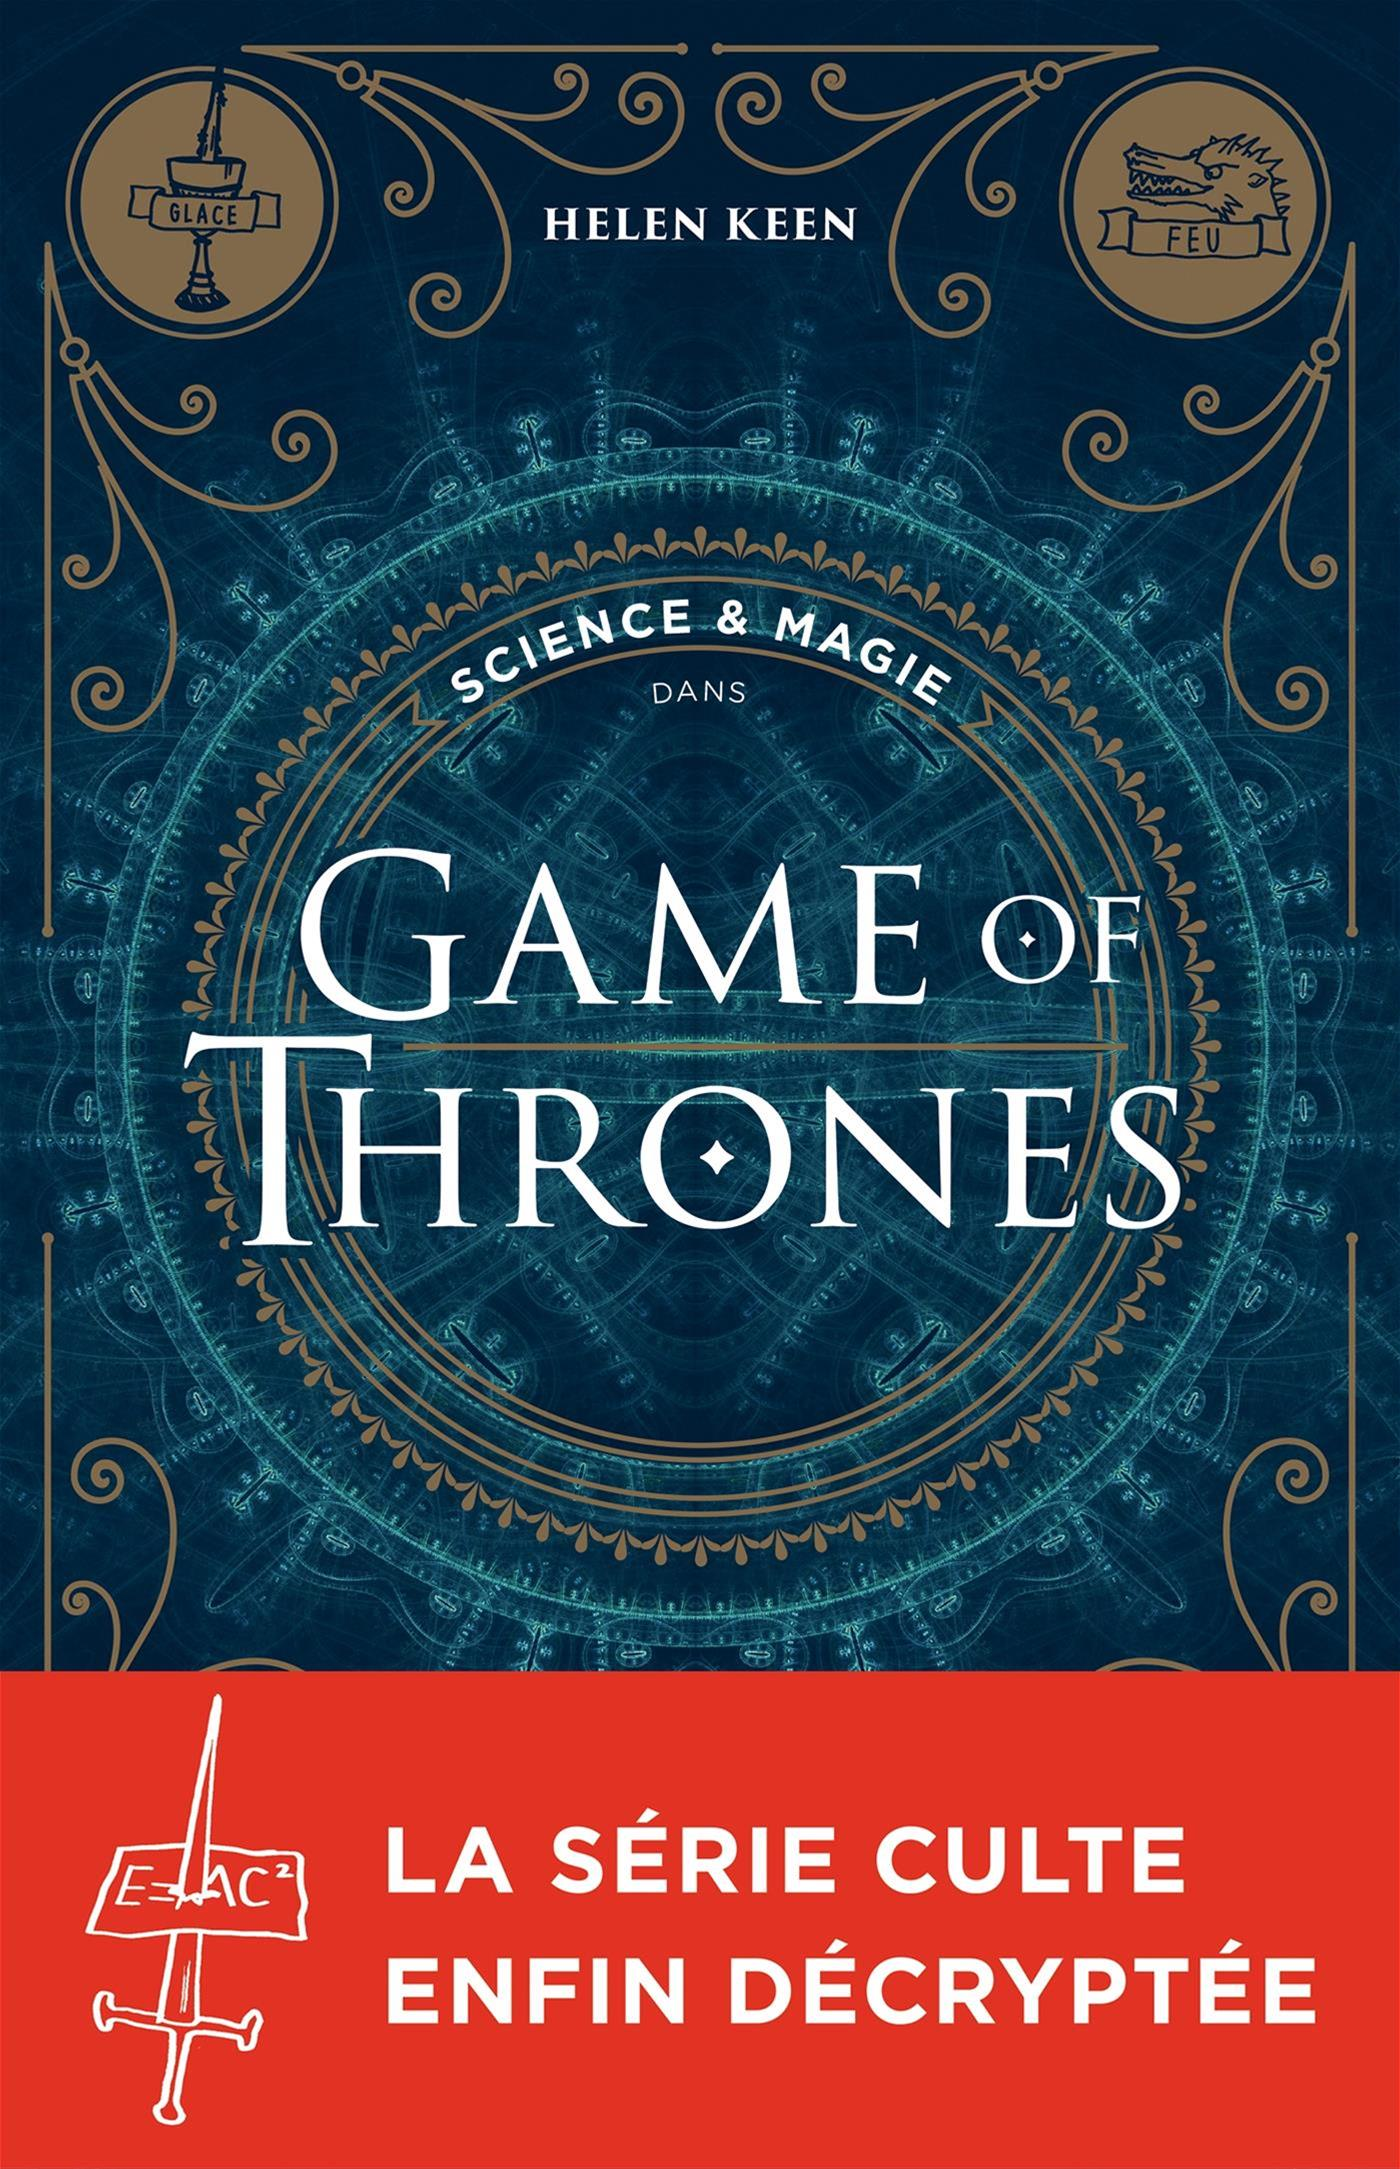 Science et magie dans Game of Thrones